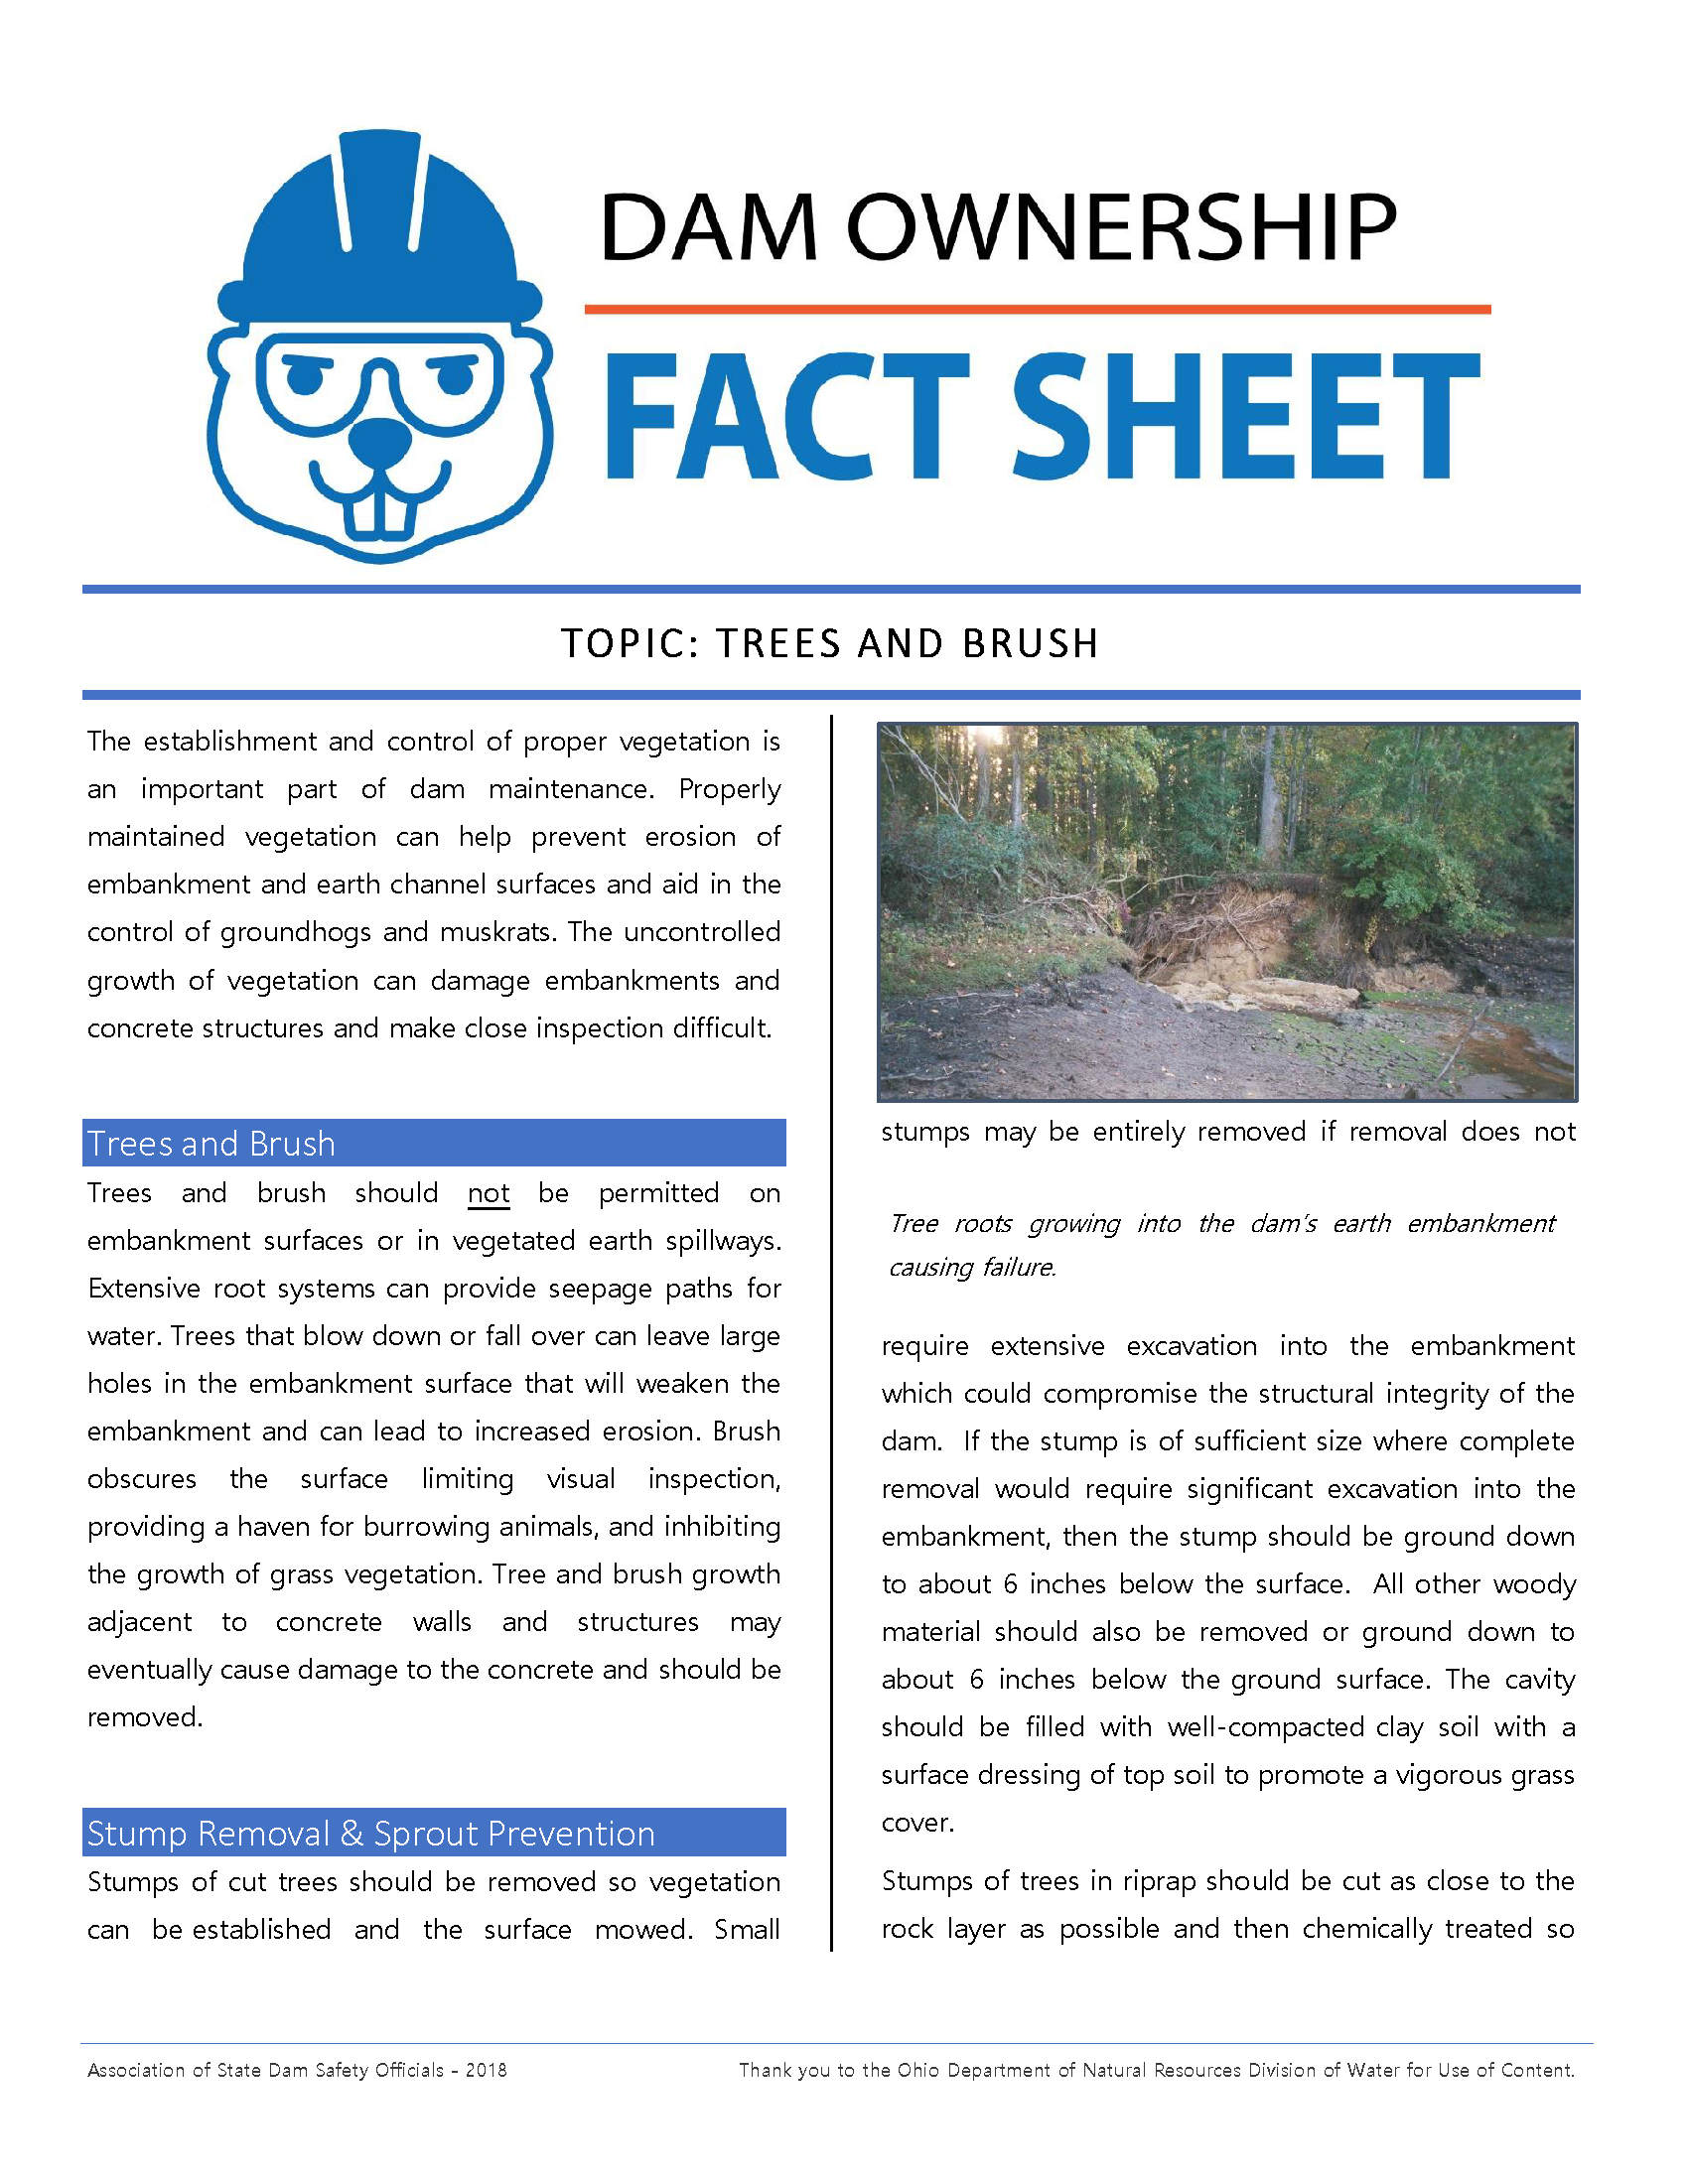 Trees and Brush Fact Sheet 2018_Page_1.png